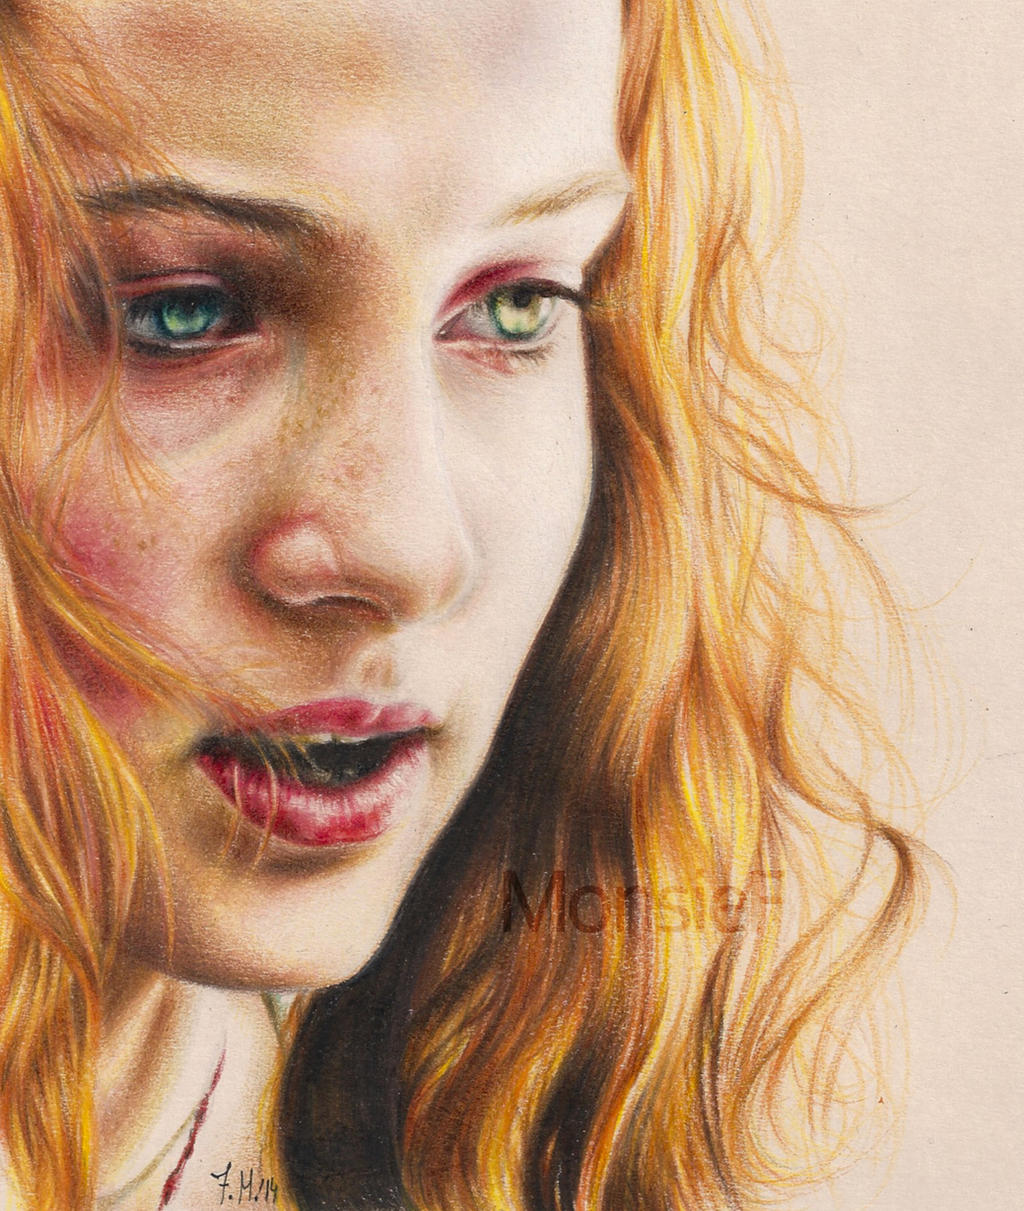 Sansa Stark by MonsieF